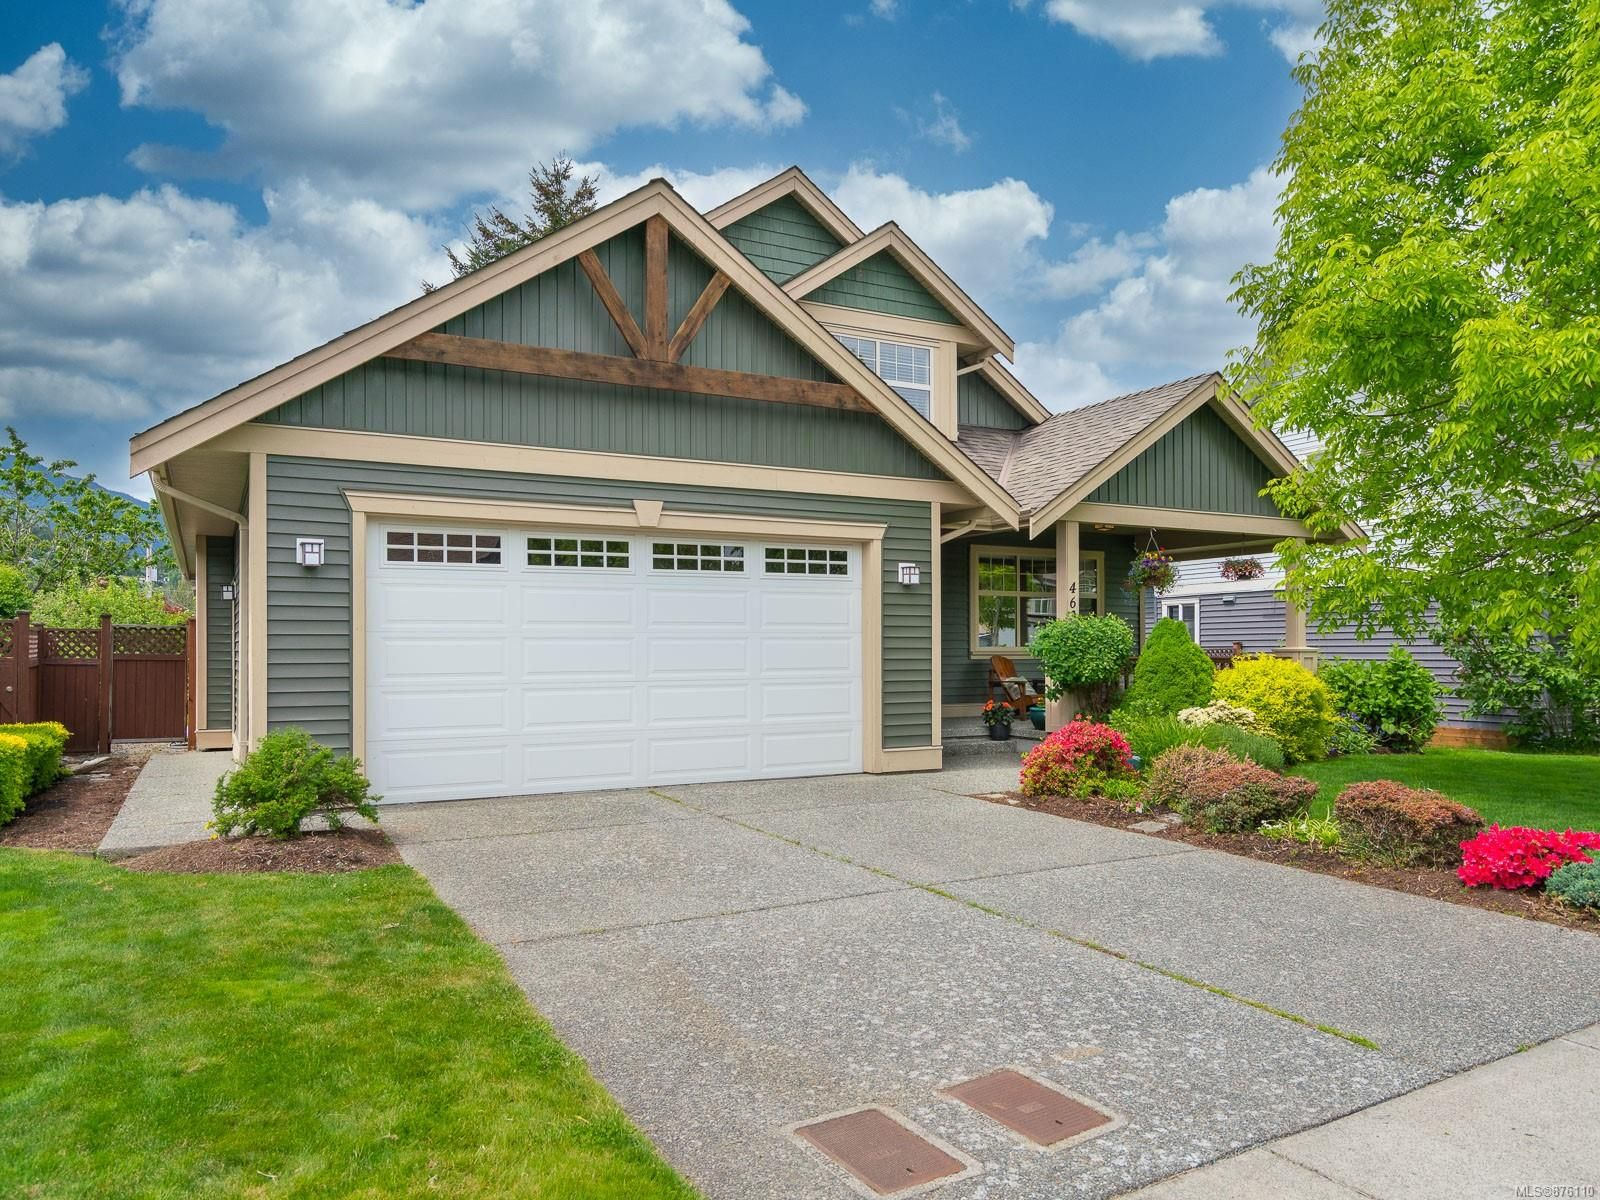 Main Photo: 463 Poets Trail Dr in : Na University District House for sale (Nanaimo)  : MLS®# 876110